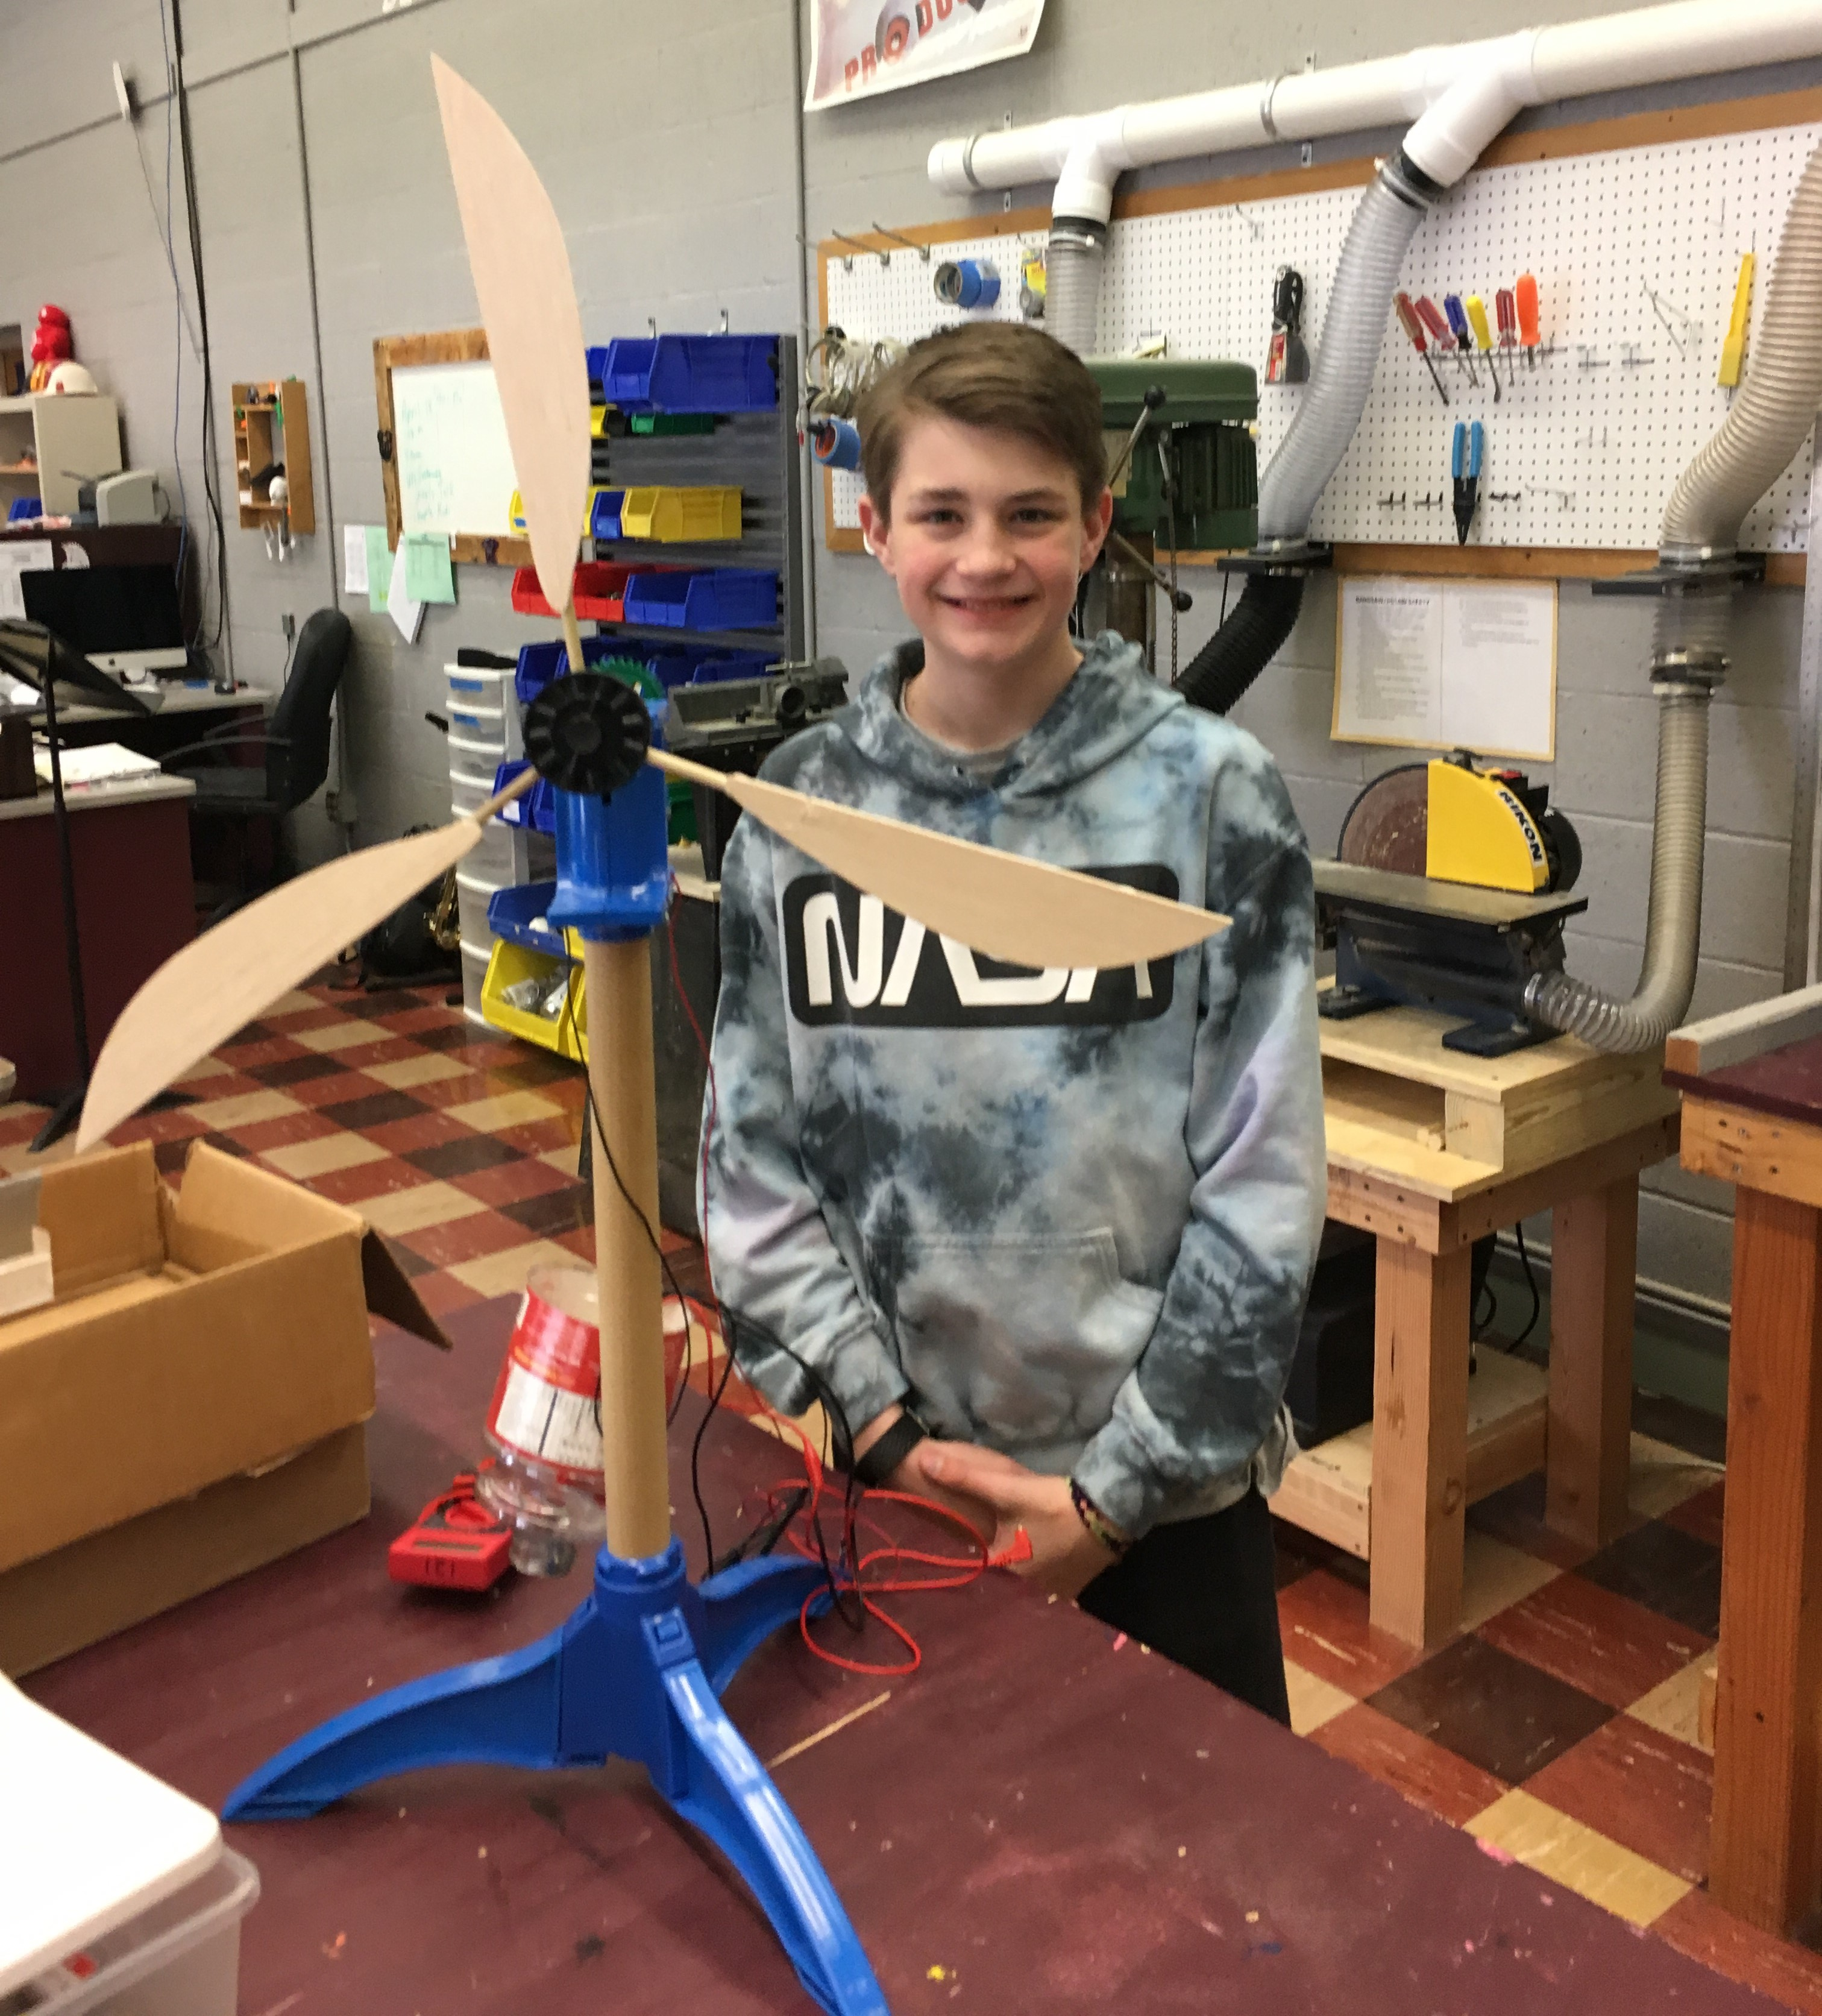 Cam Jeffrey with wind turbine designed for kidwind challenge